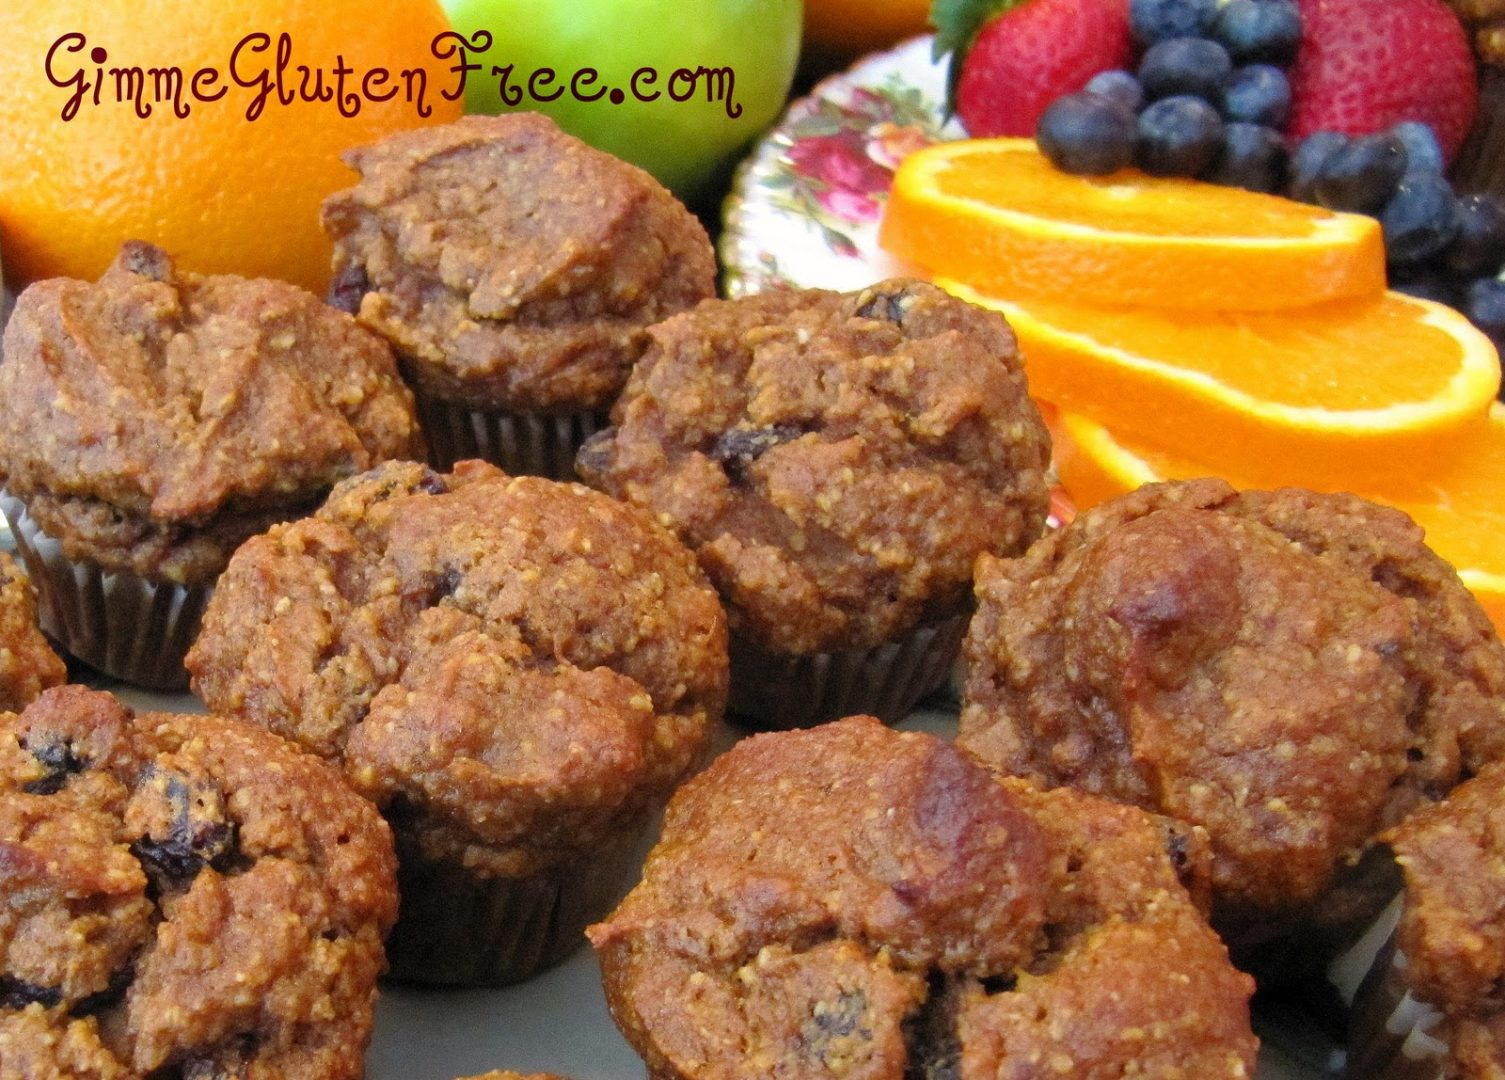 Gluten Free High Fiber & Whole Grain Recipes